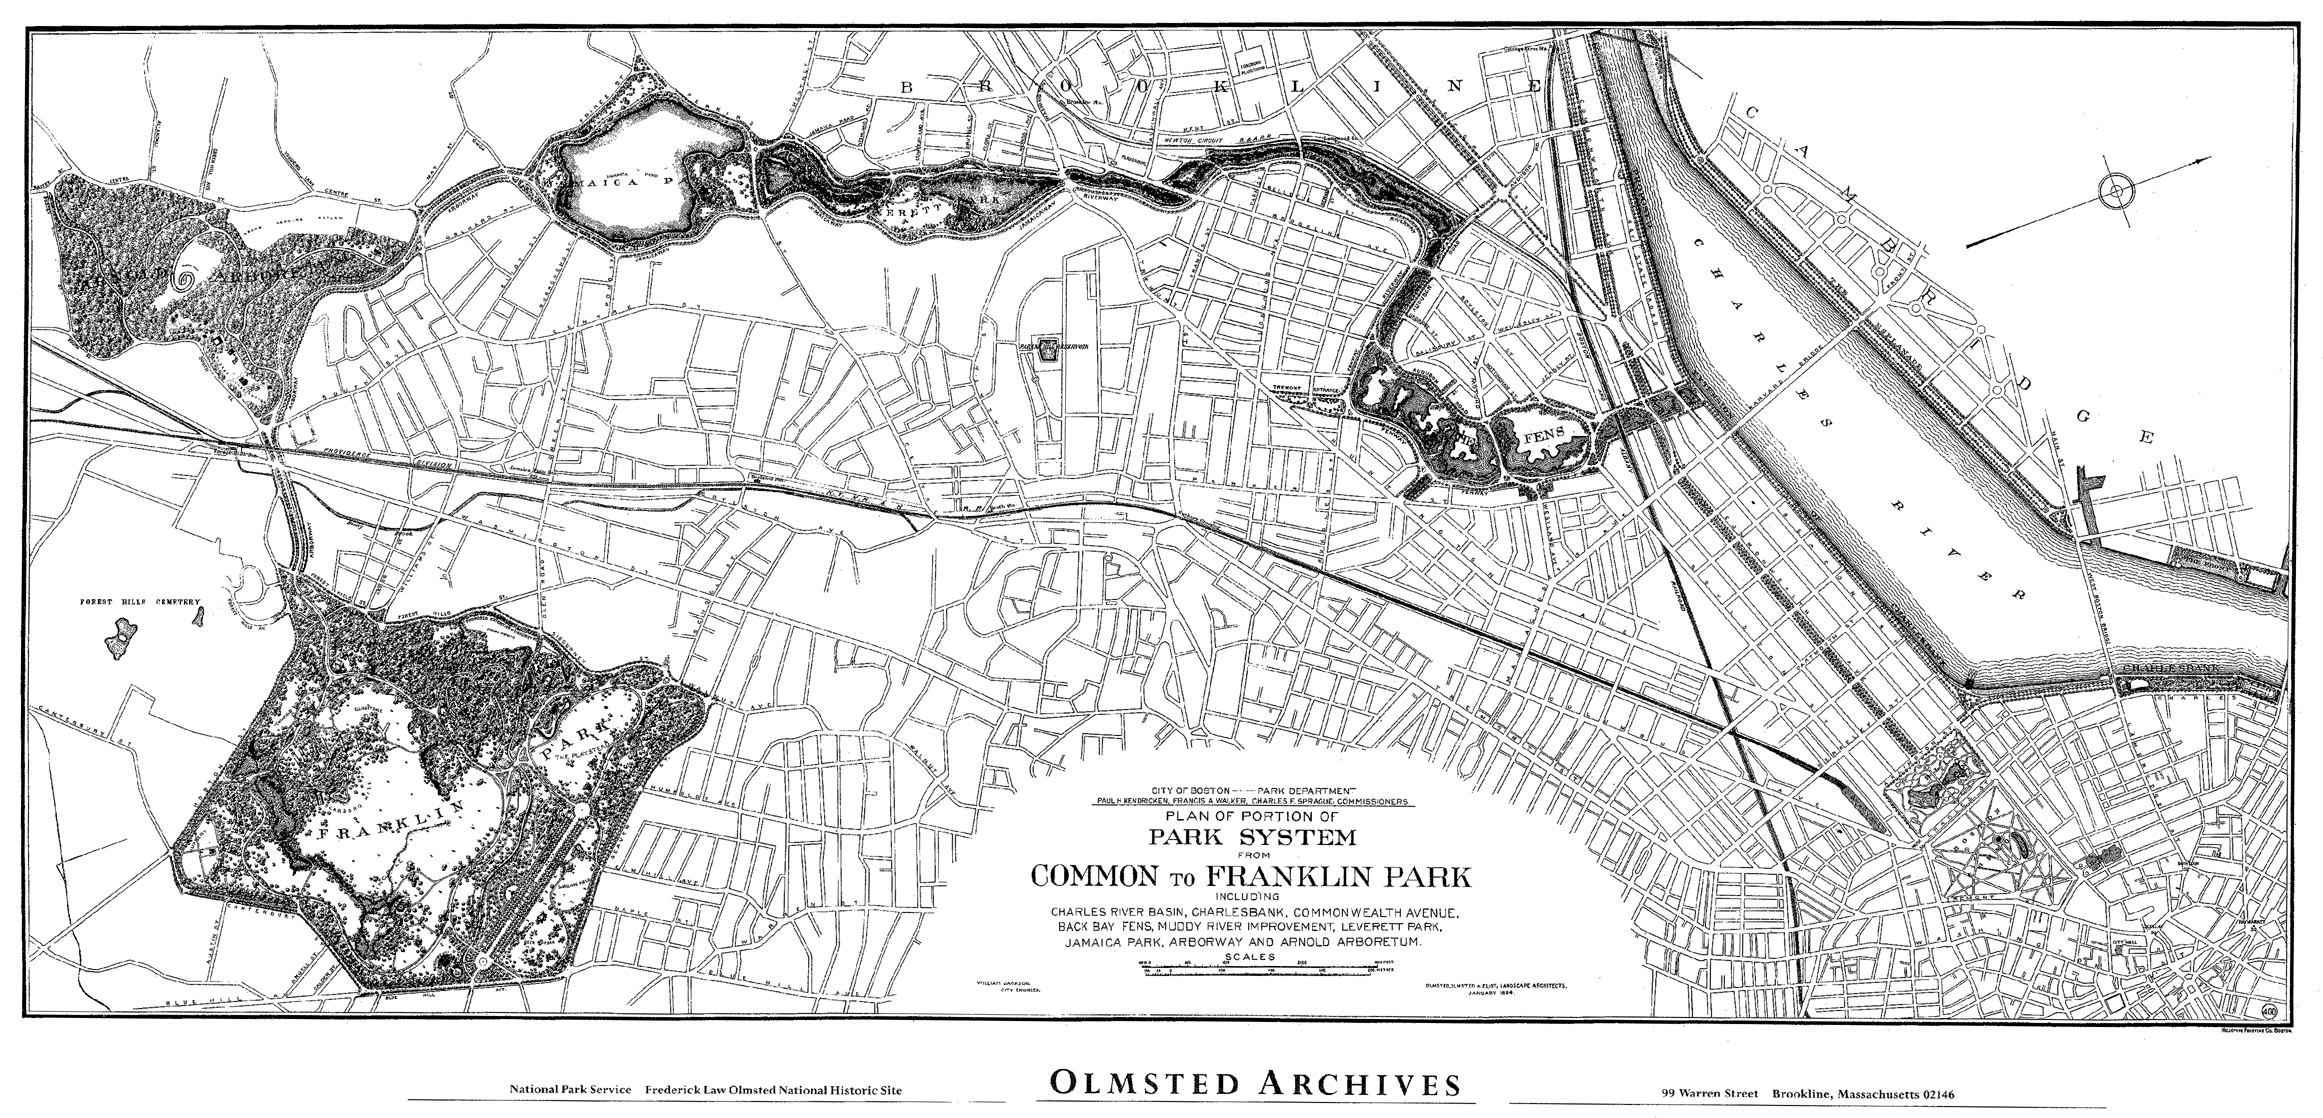 Drawing of the Emerald Necklace park system, from the Common to Franklin Park, January 1914